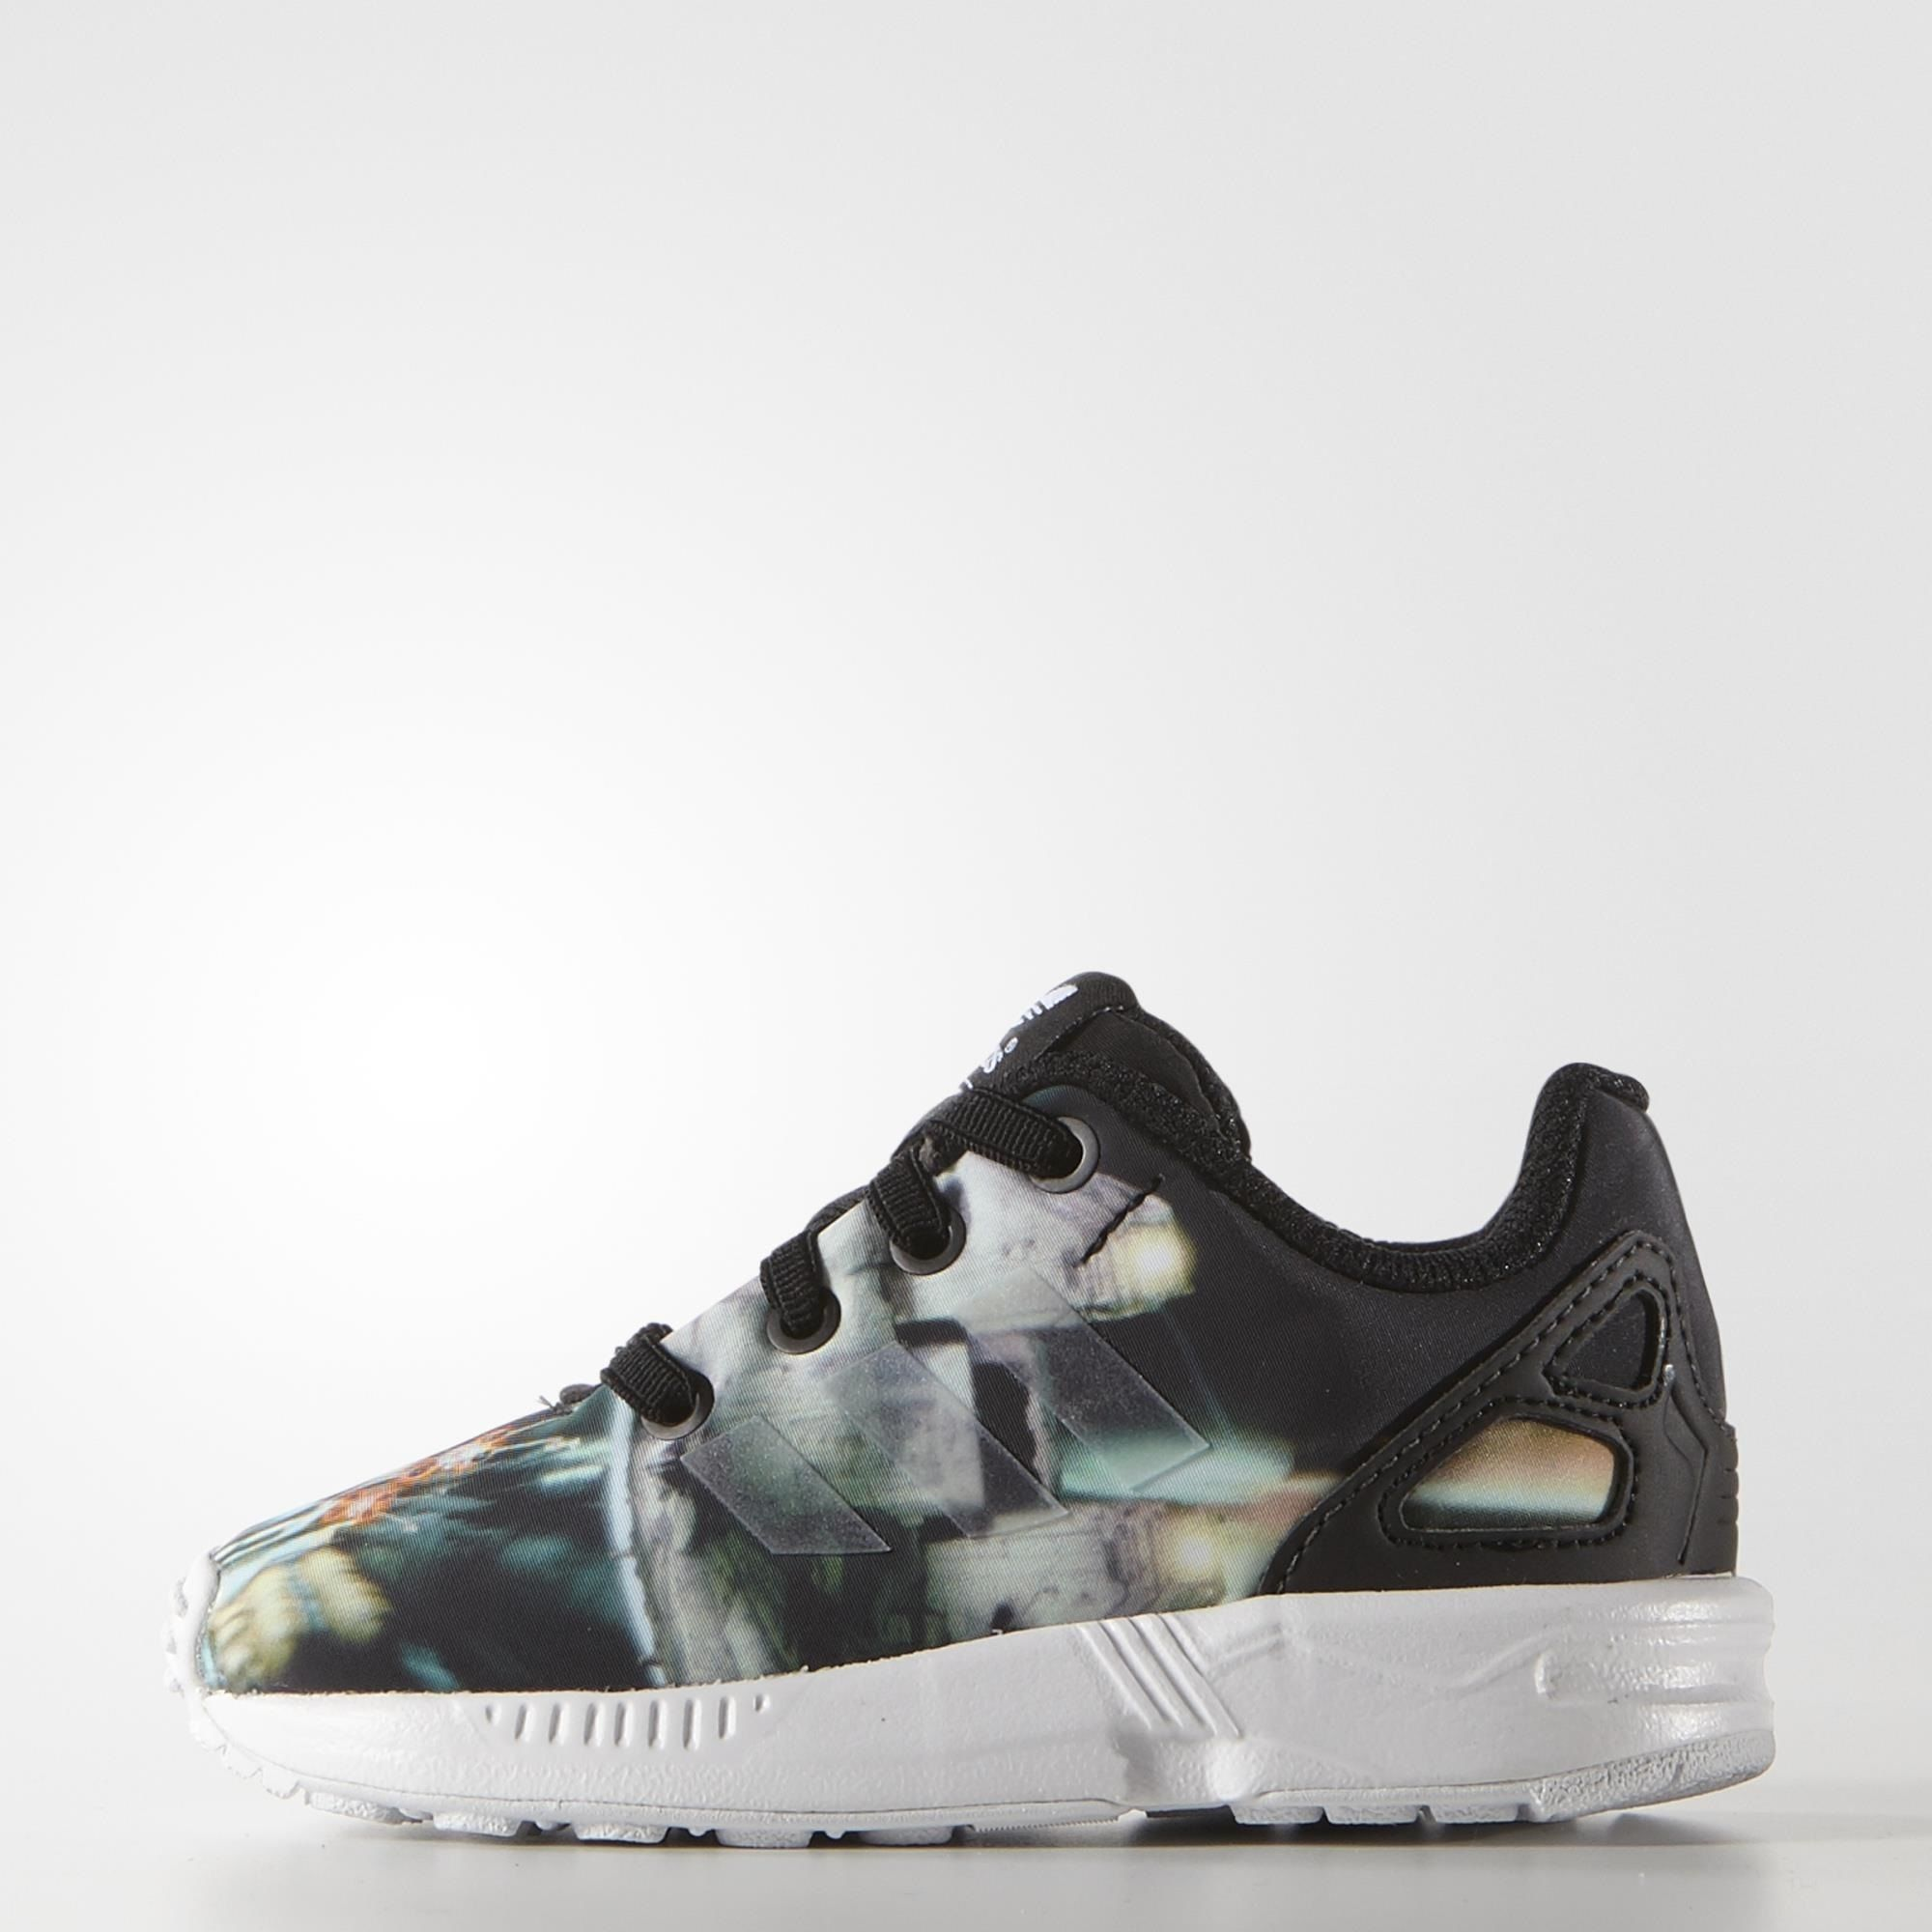 Zapatos negros Adidas ZX Flux infantiles 04zXbMgpt6